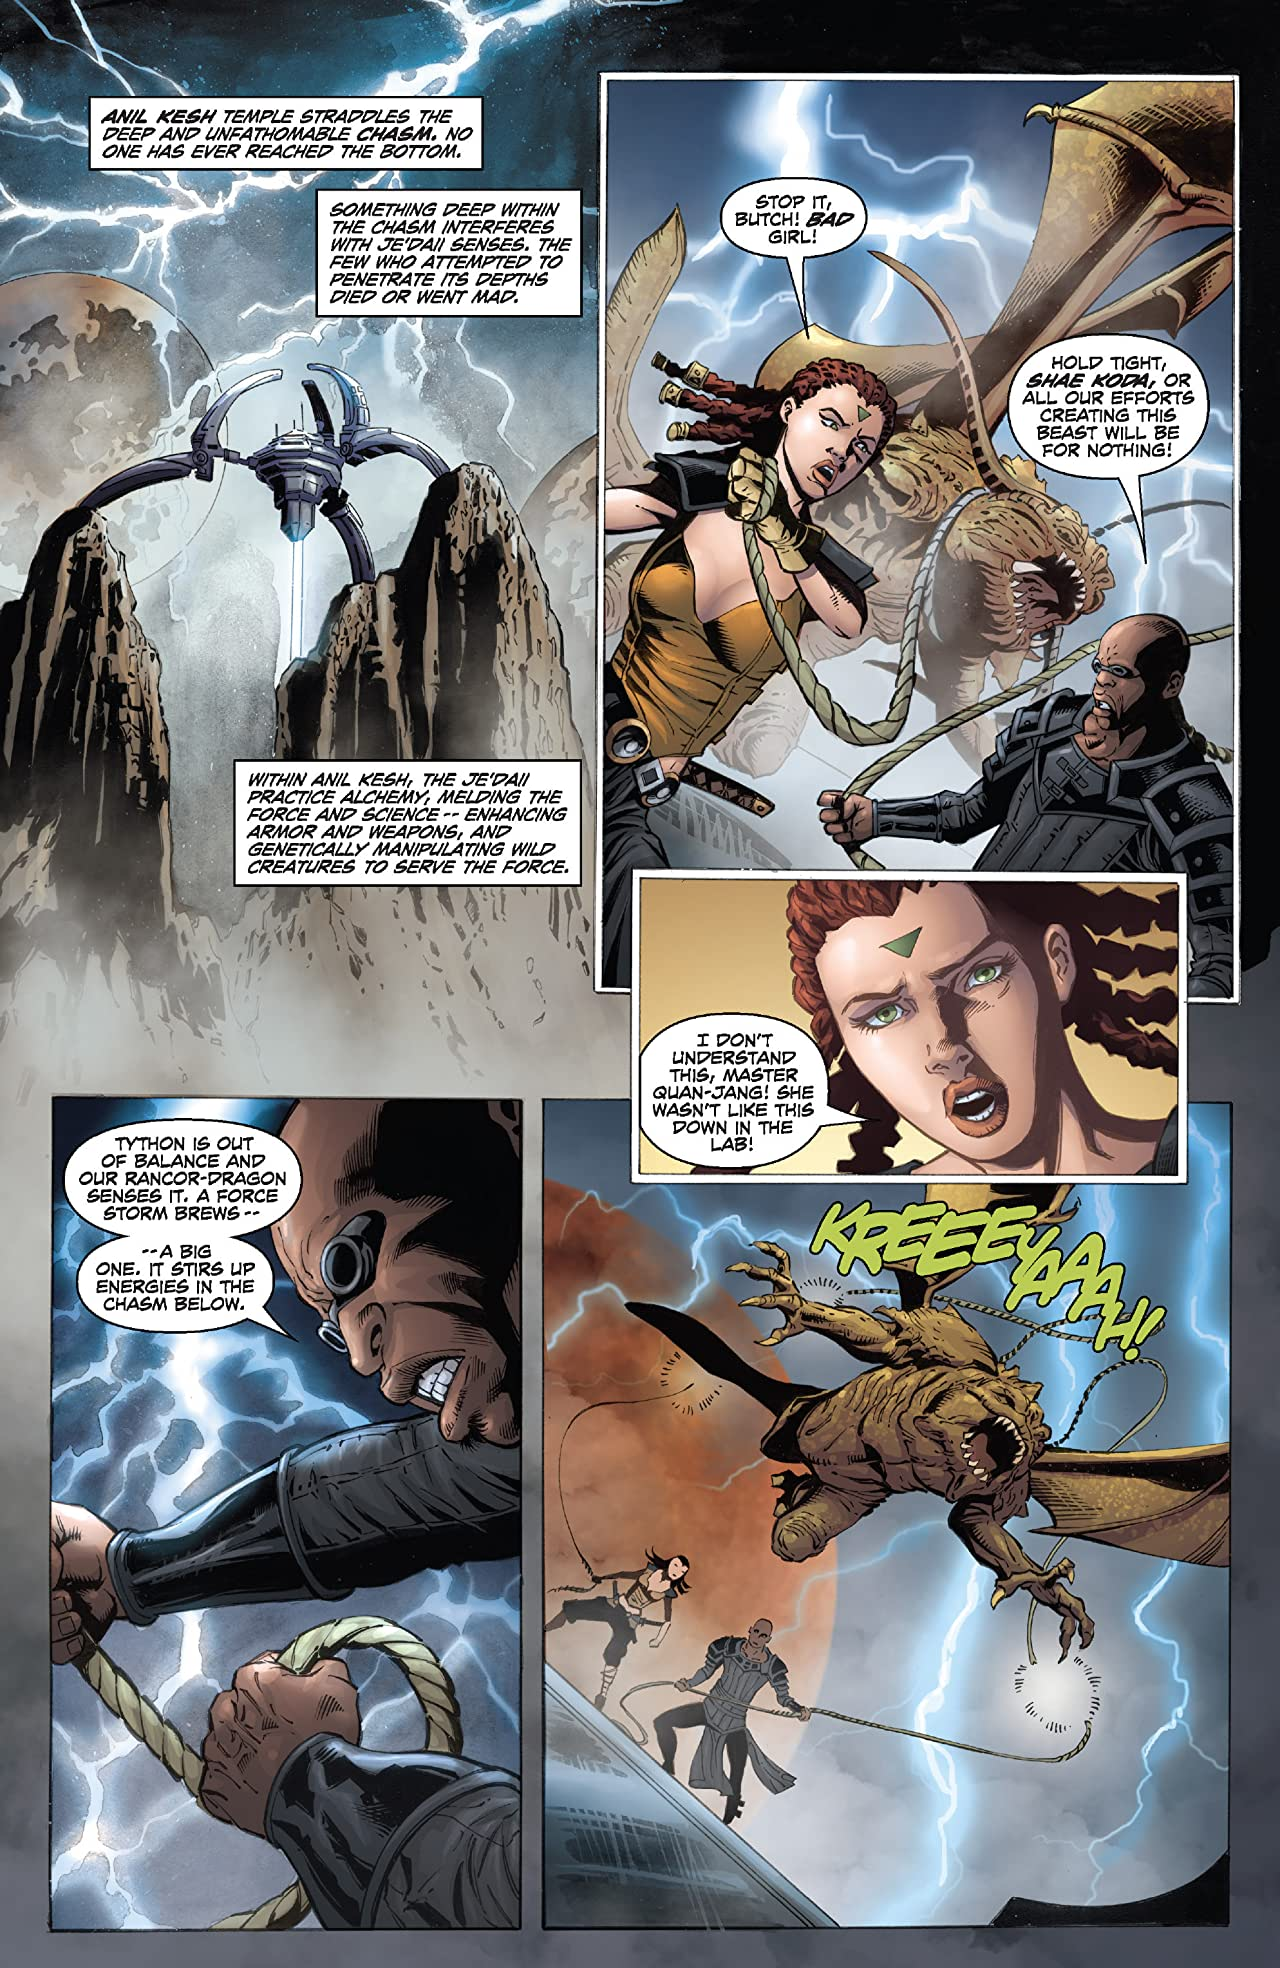 Star Wars: Dawn of the Jedi - Force Storm (2012) #2 (of 5)